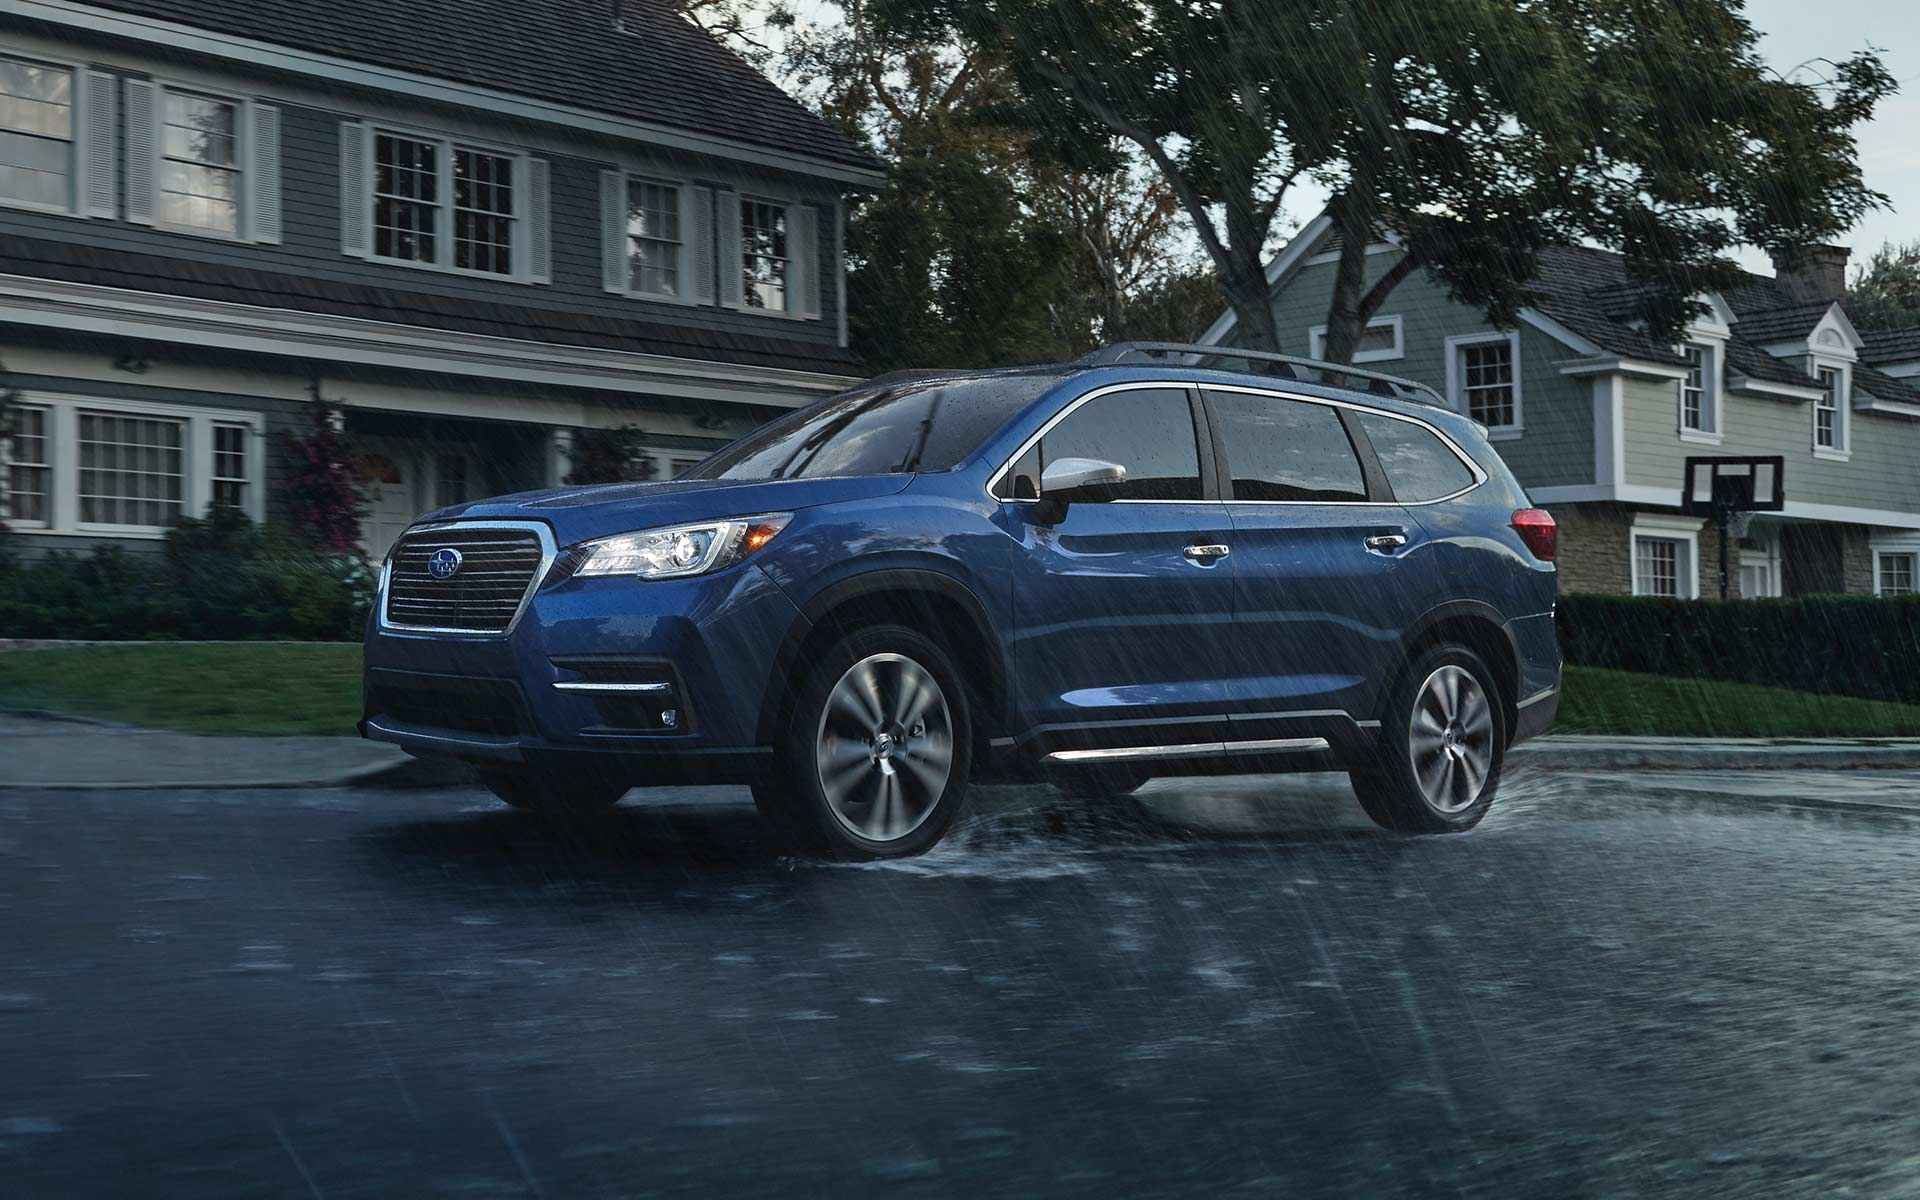 Michigan Review - 2019 Subaru Ascent SUV - OVERVIEW